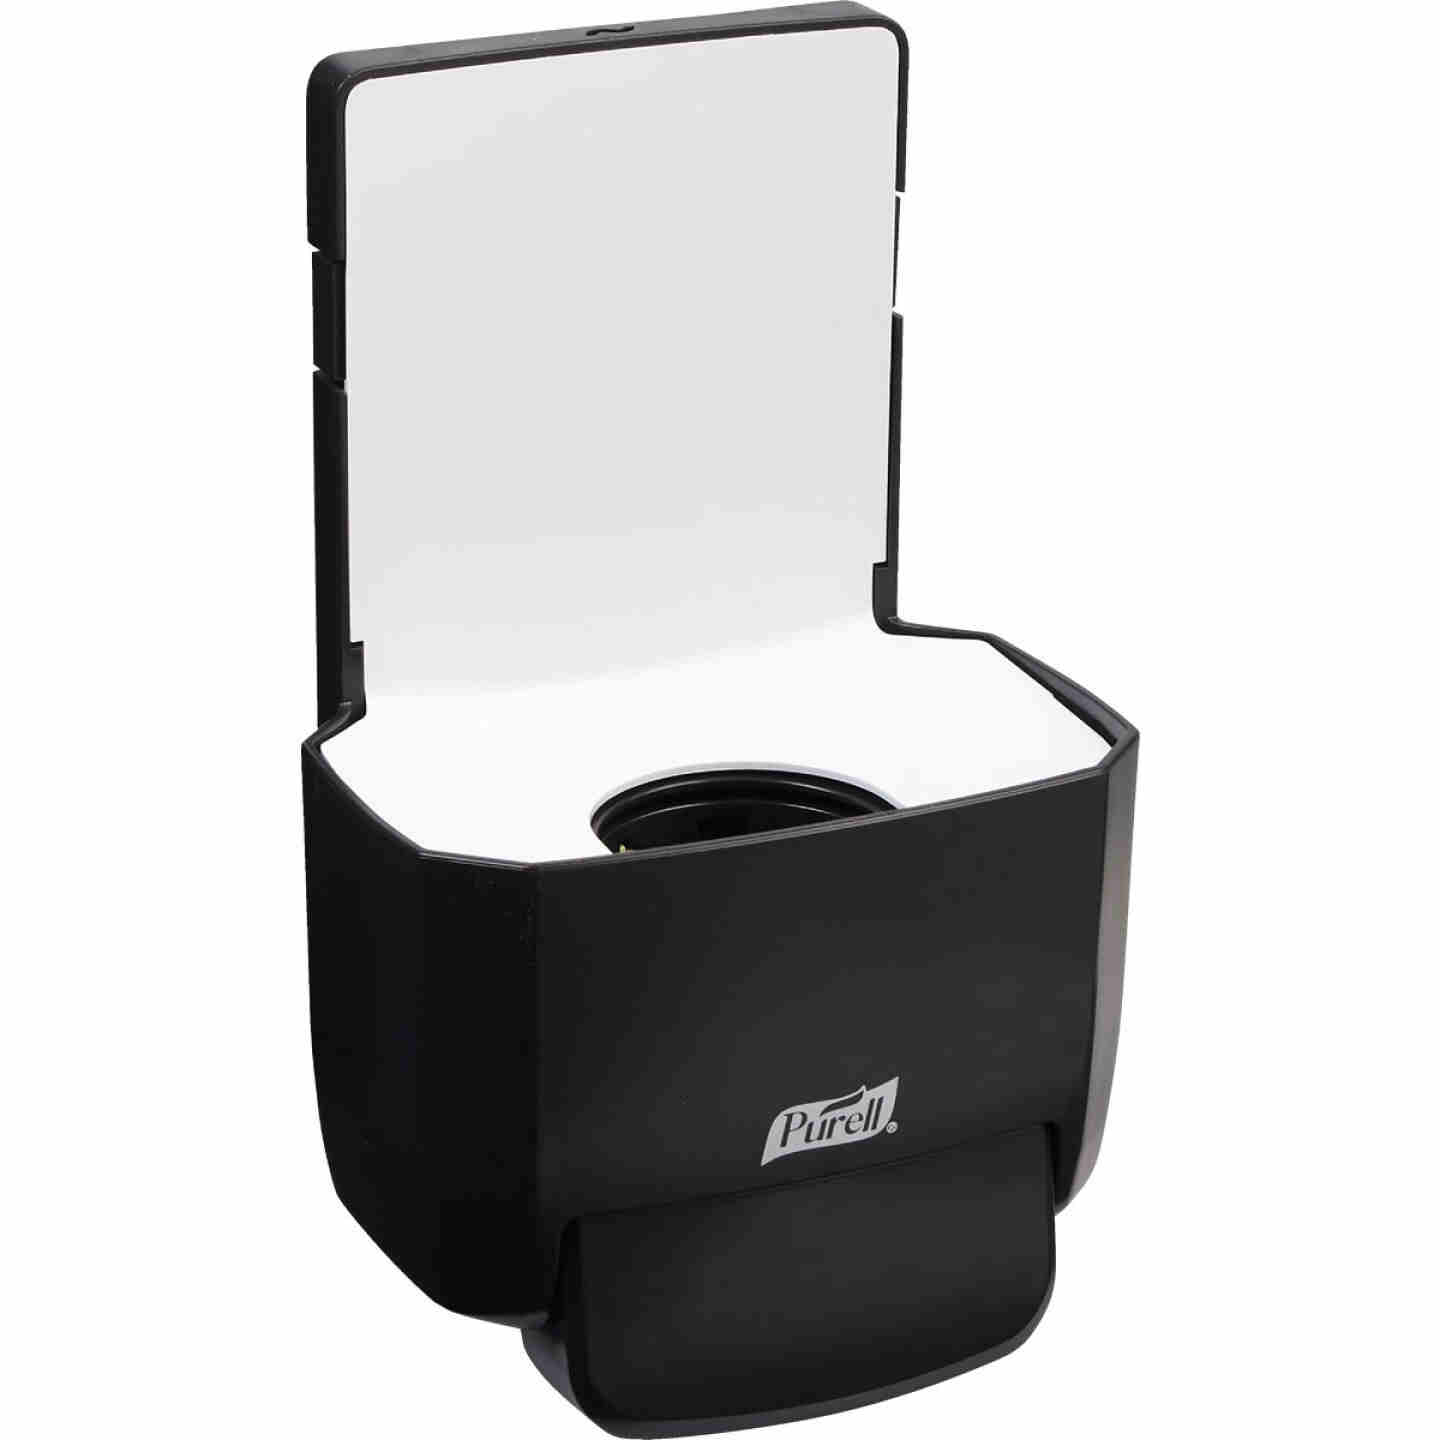 Purell ES4 Black Push-Style 1200mL Soap Dispenser Image 1